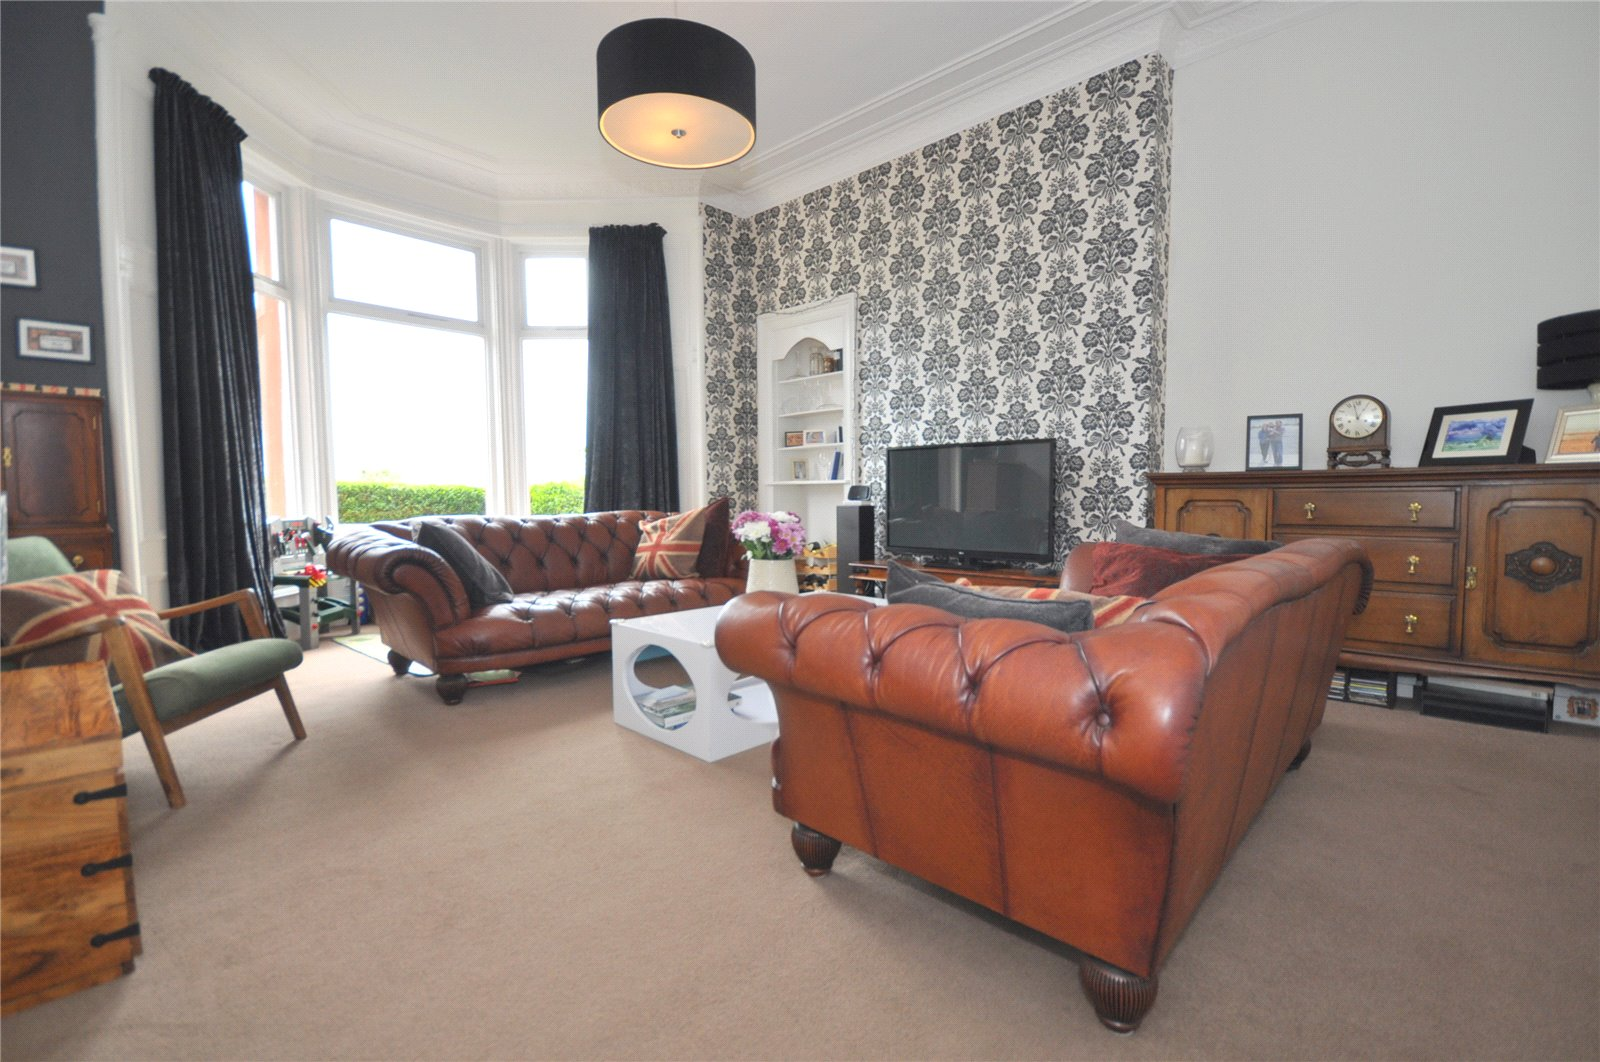 Our Property of the Week: 40 Thornwood Terrace, Glasgow